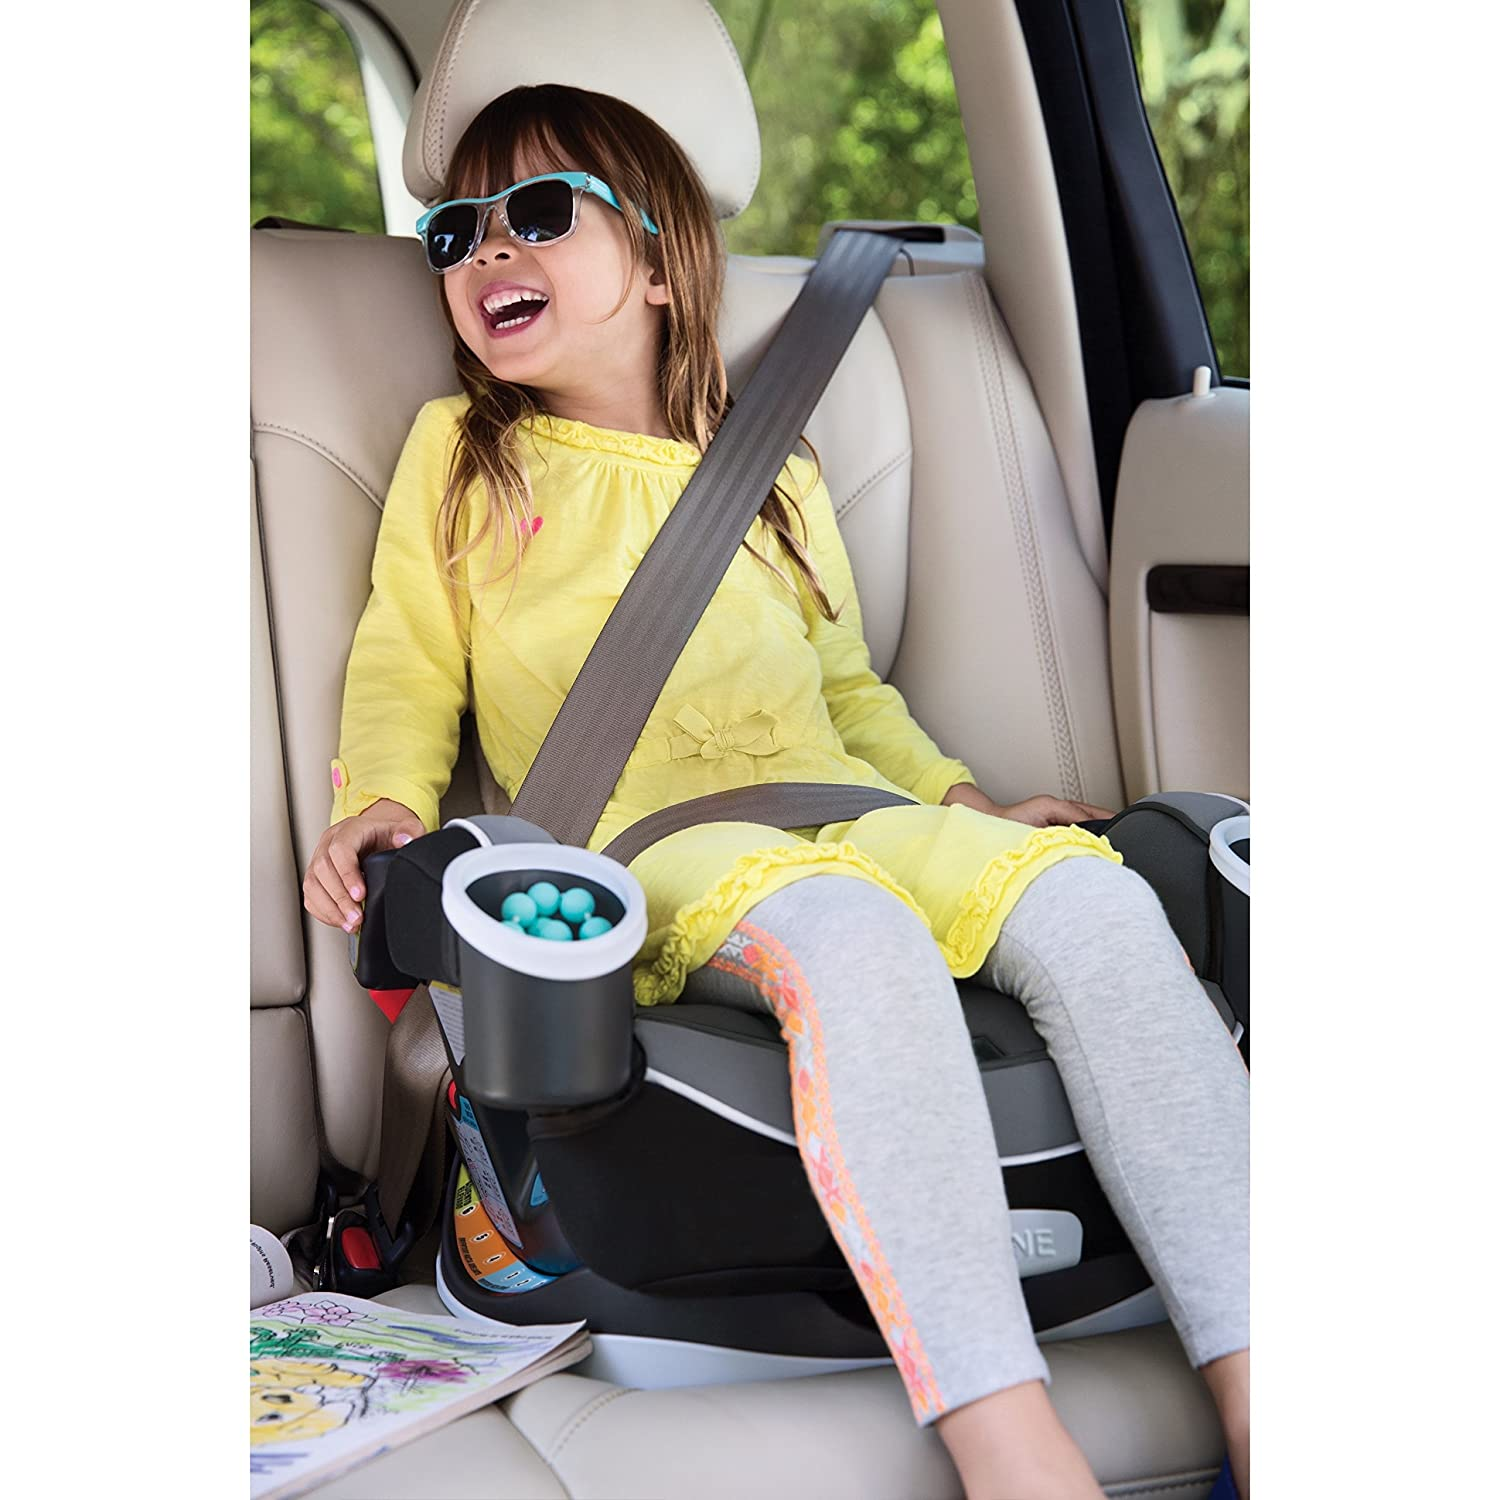 Graco 4ever All In One Convertible Car Seat Matrix GRACO CHILDREN S PRODUCTS